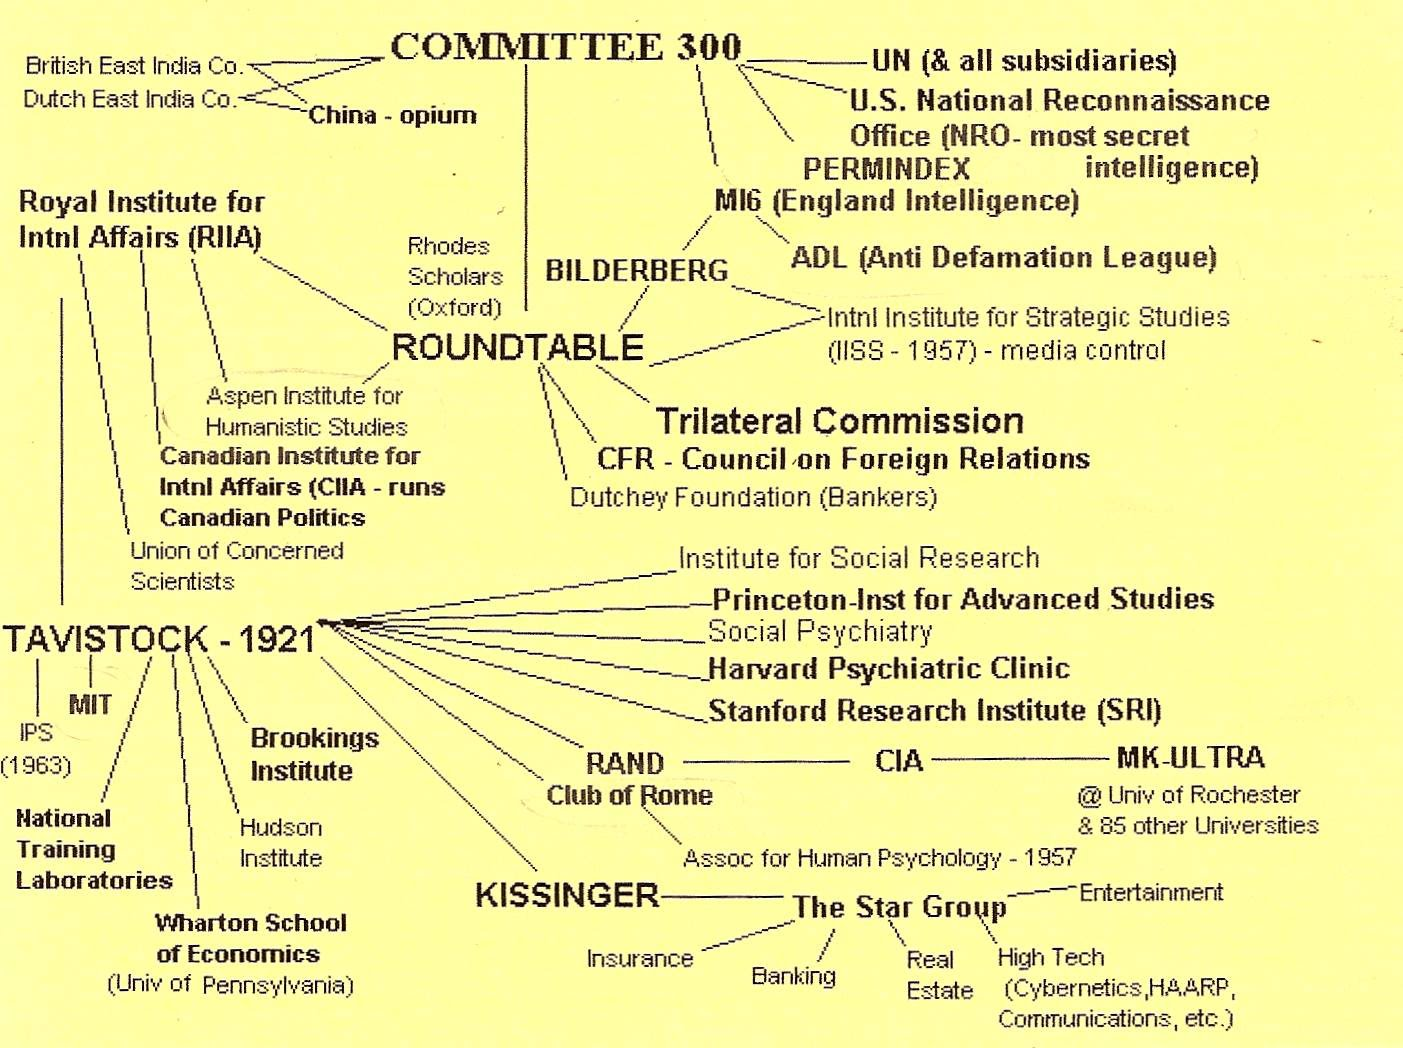 Committee 300